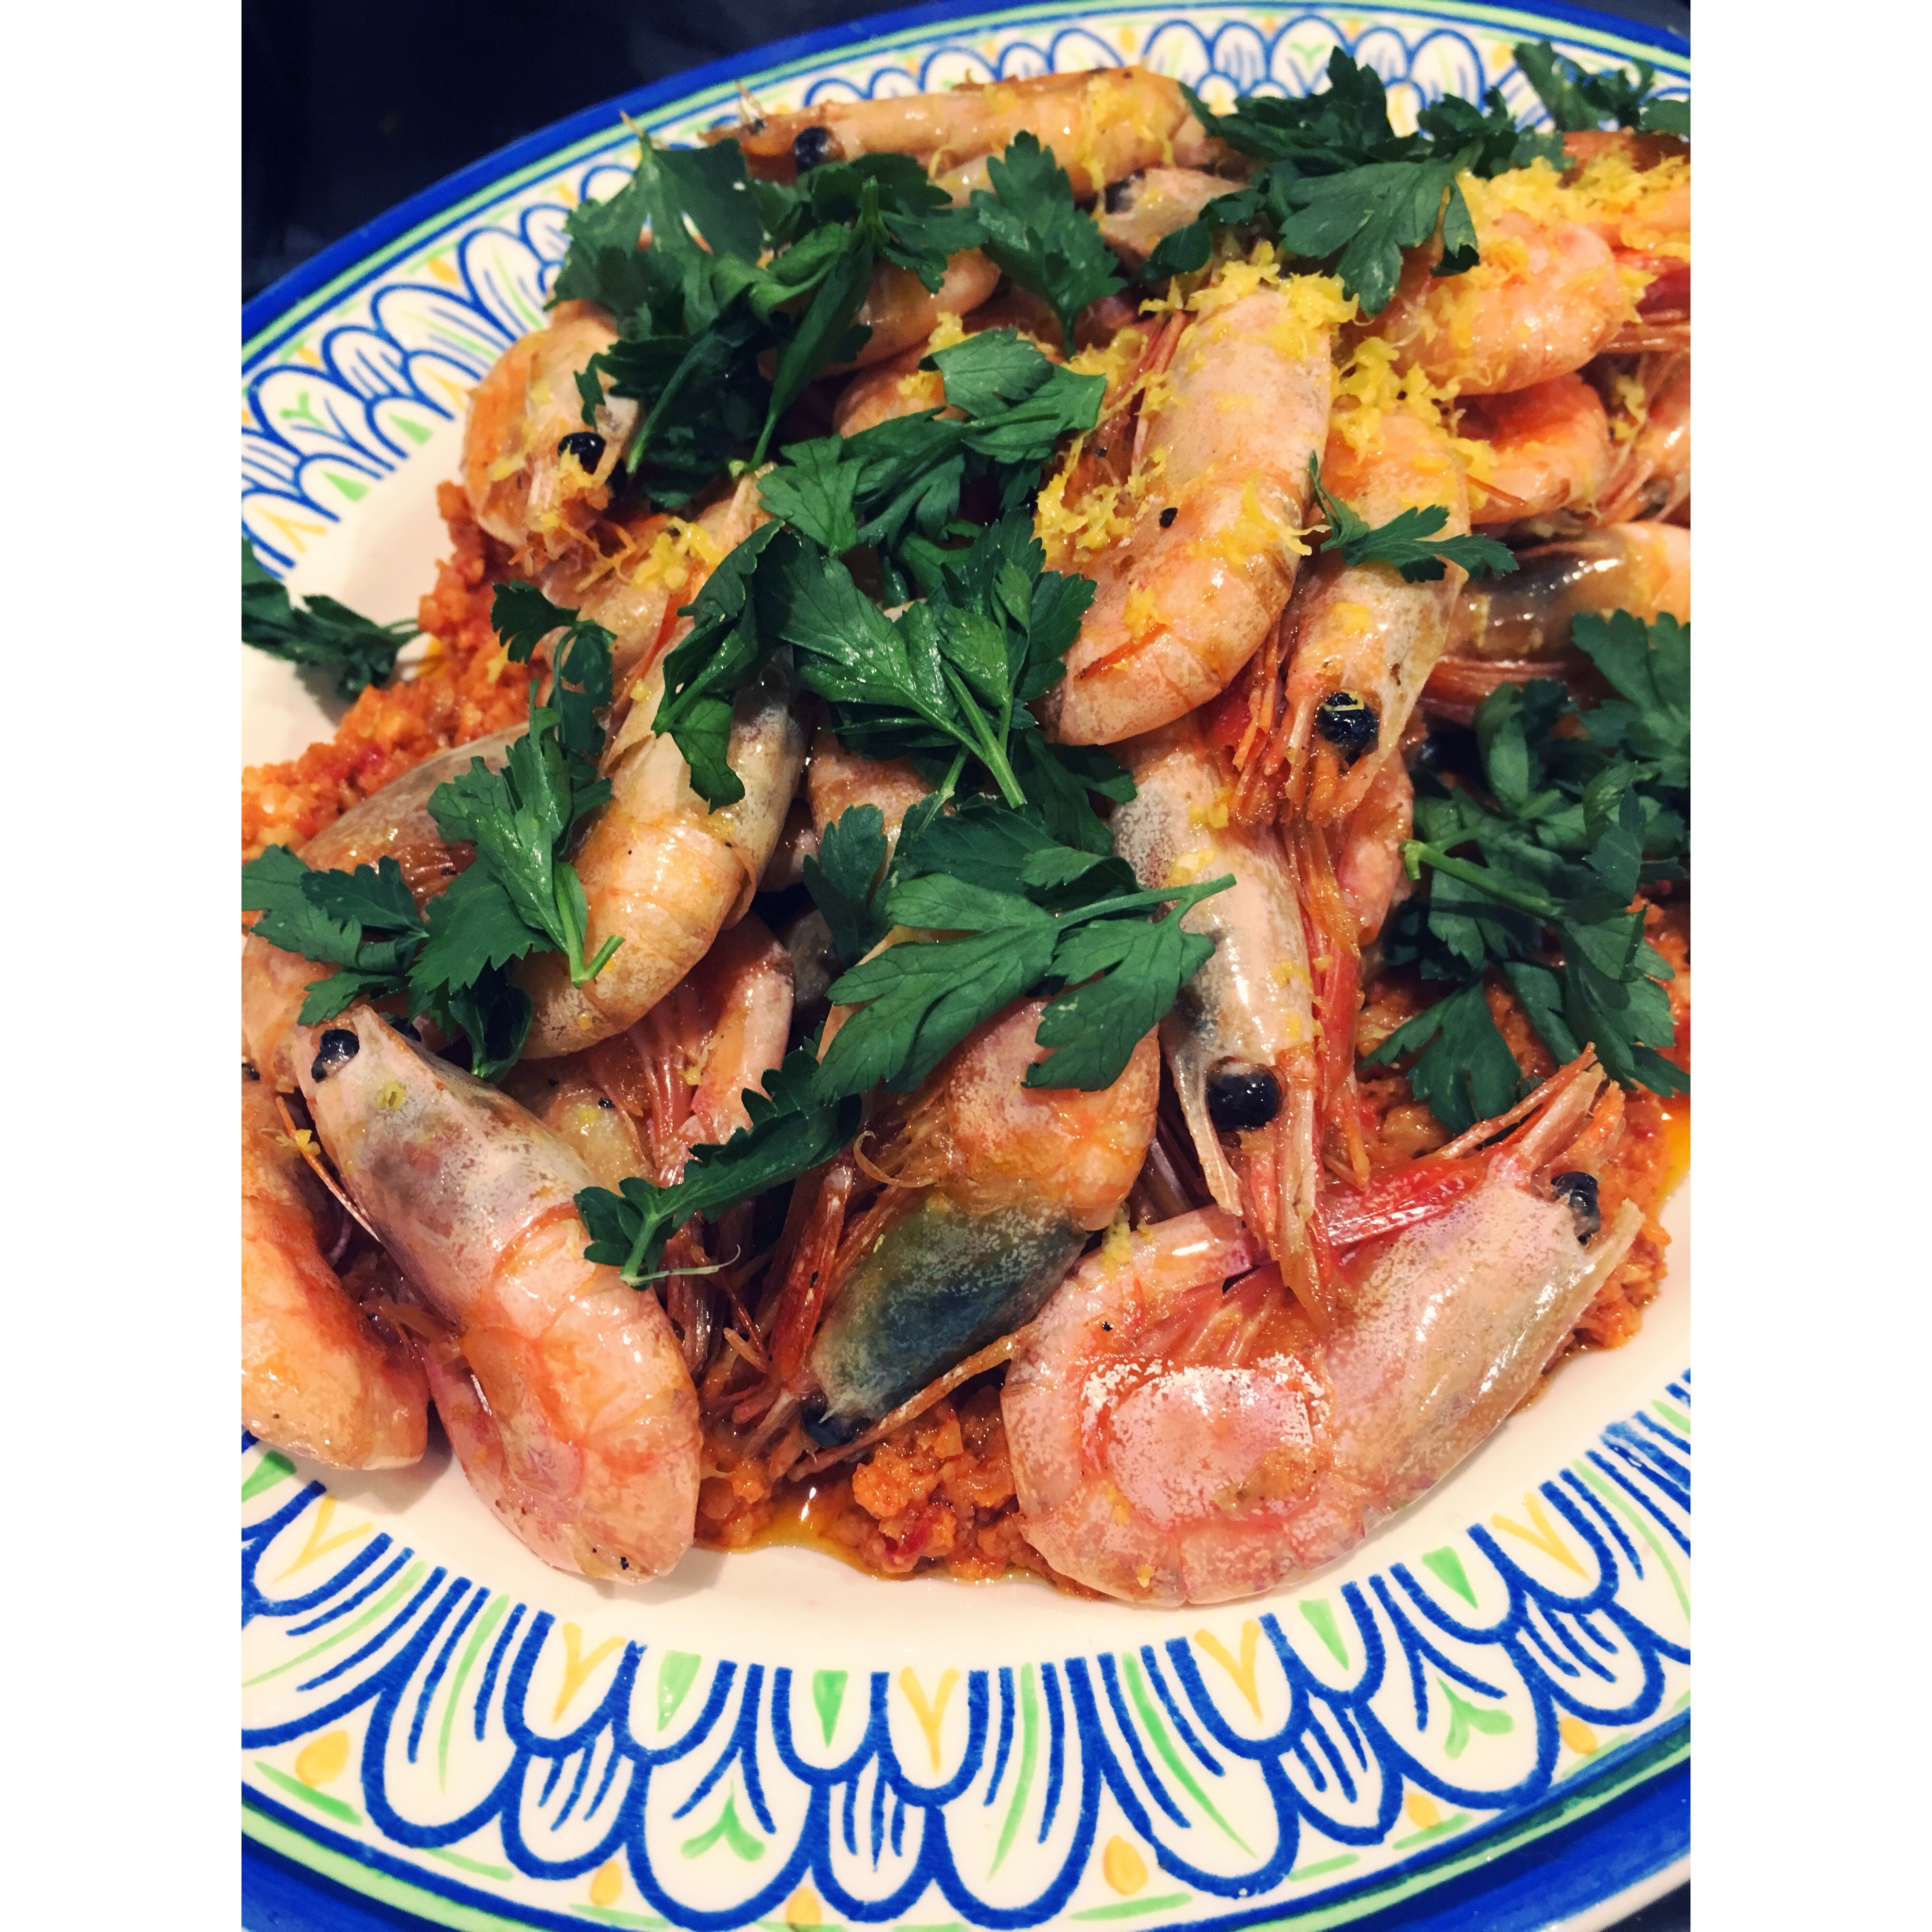 grilled prawns with romesco sauce, lemon & parsley